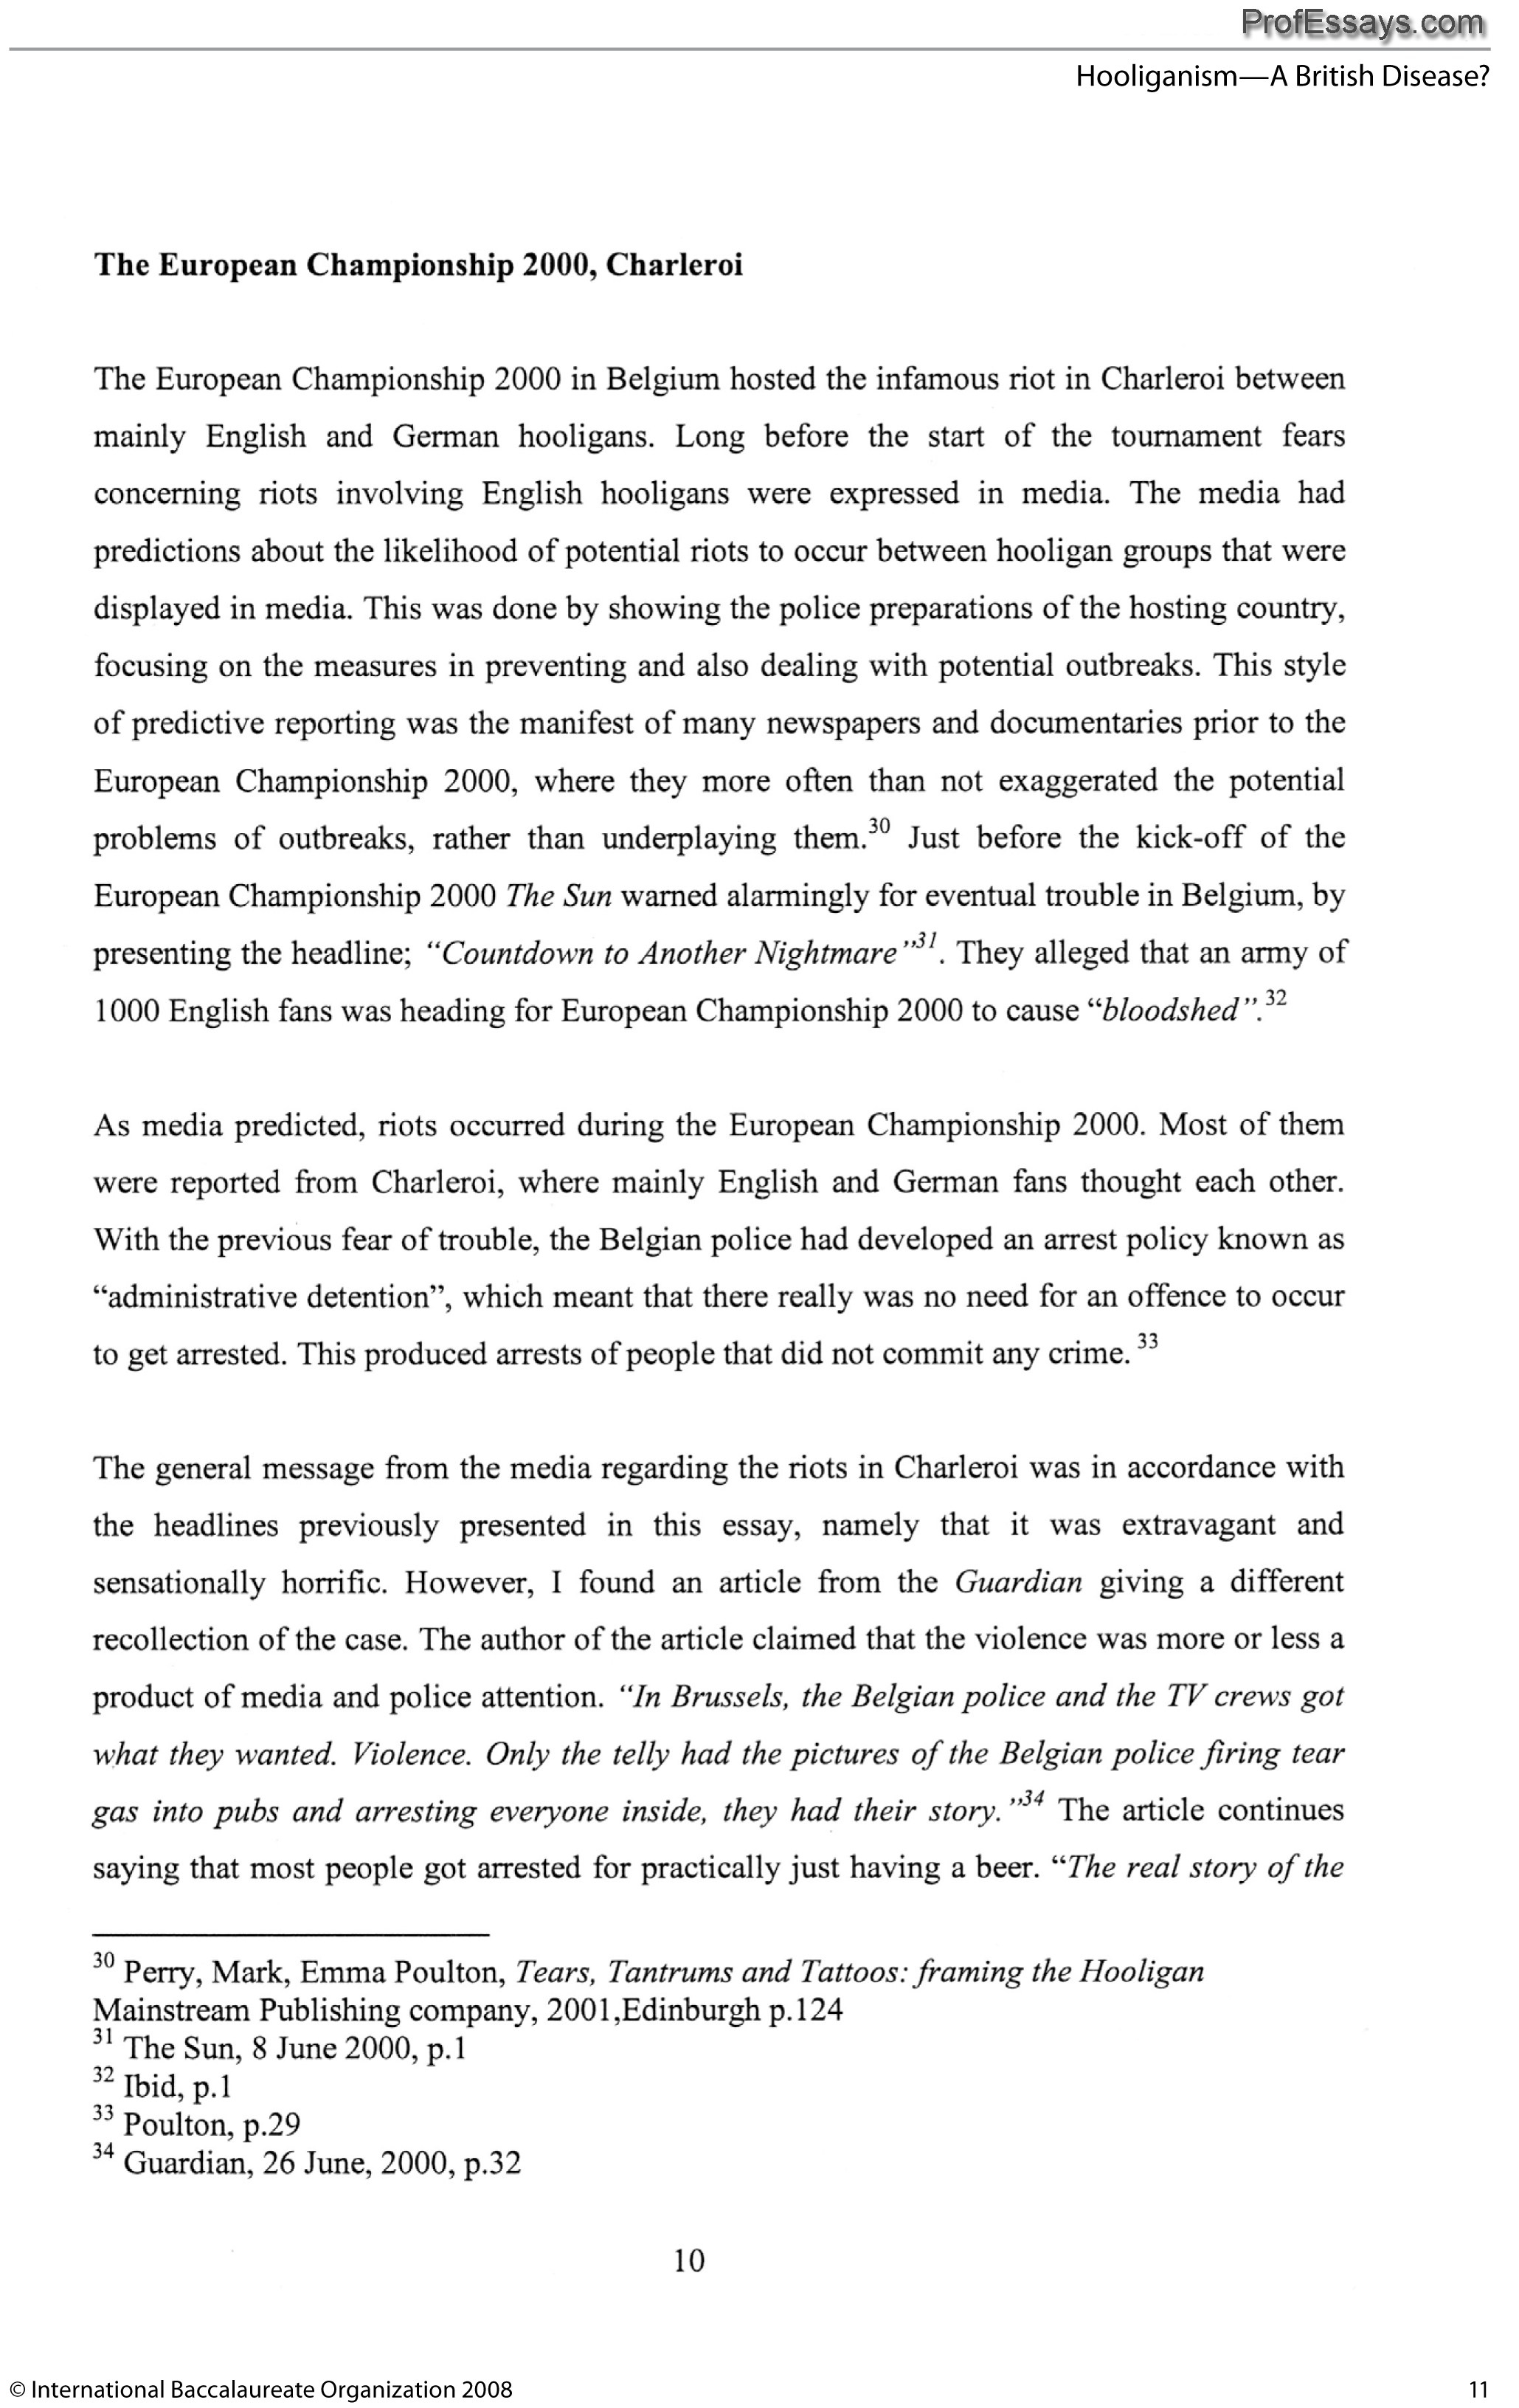 014 Ib Extended Essay Free Sample Example Definition Striking Topics For High School Creative Full